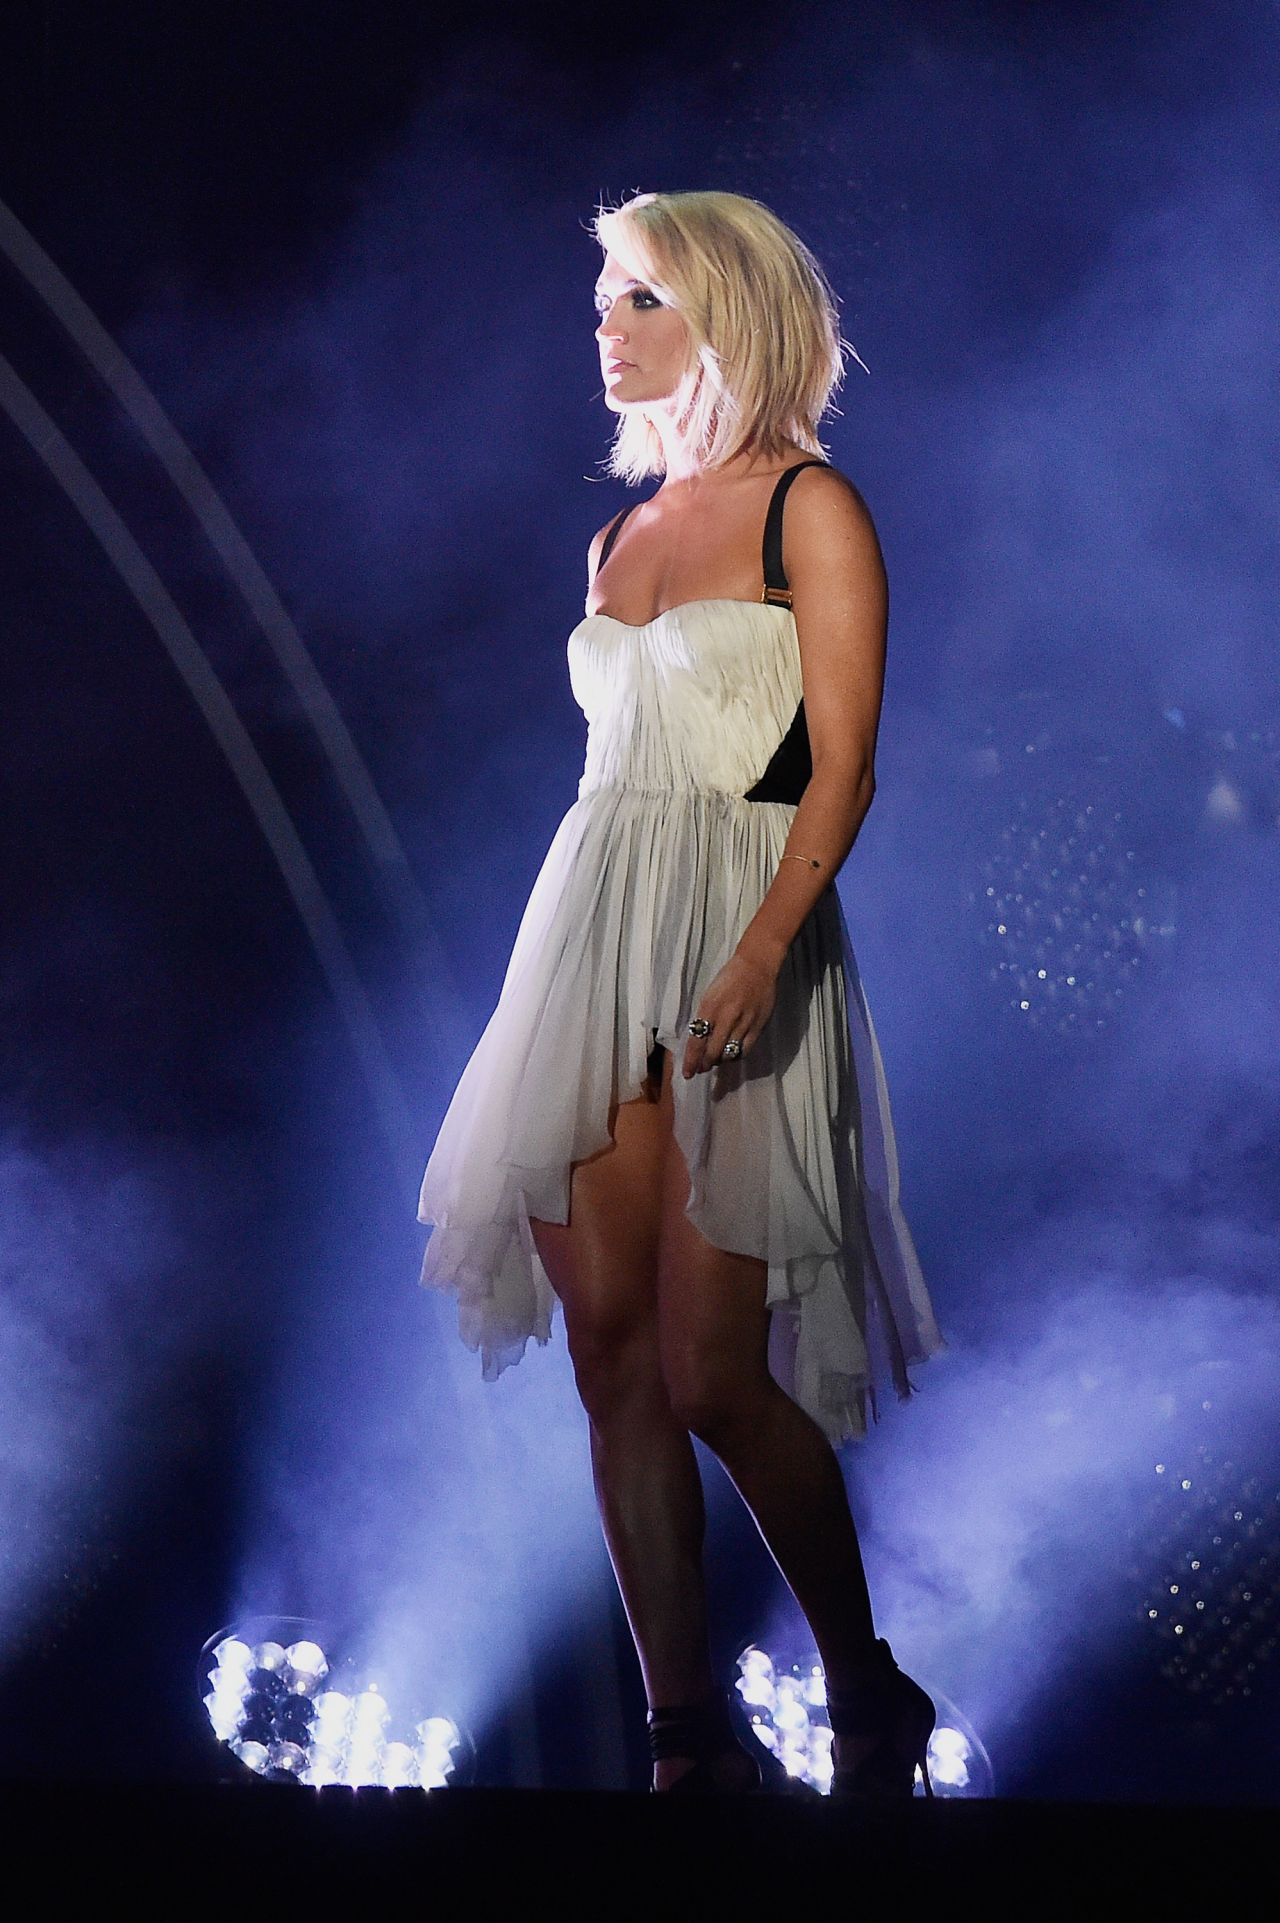 Carrie Underwood Performs At Grammy Awards 2016 In Los